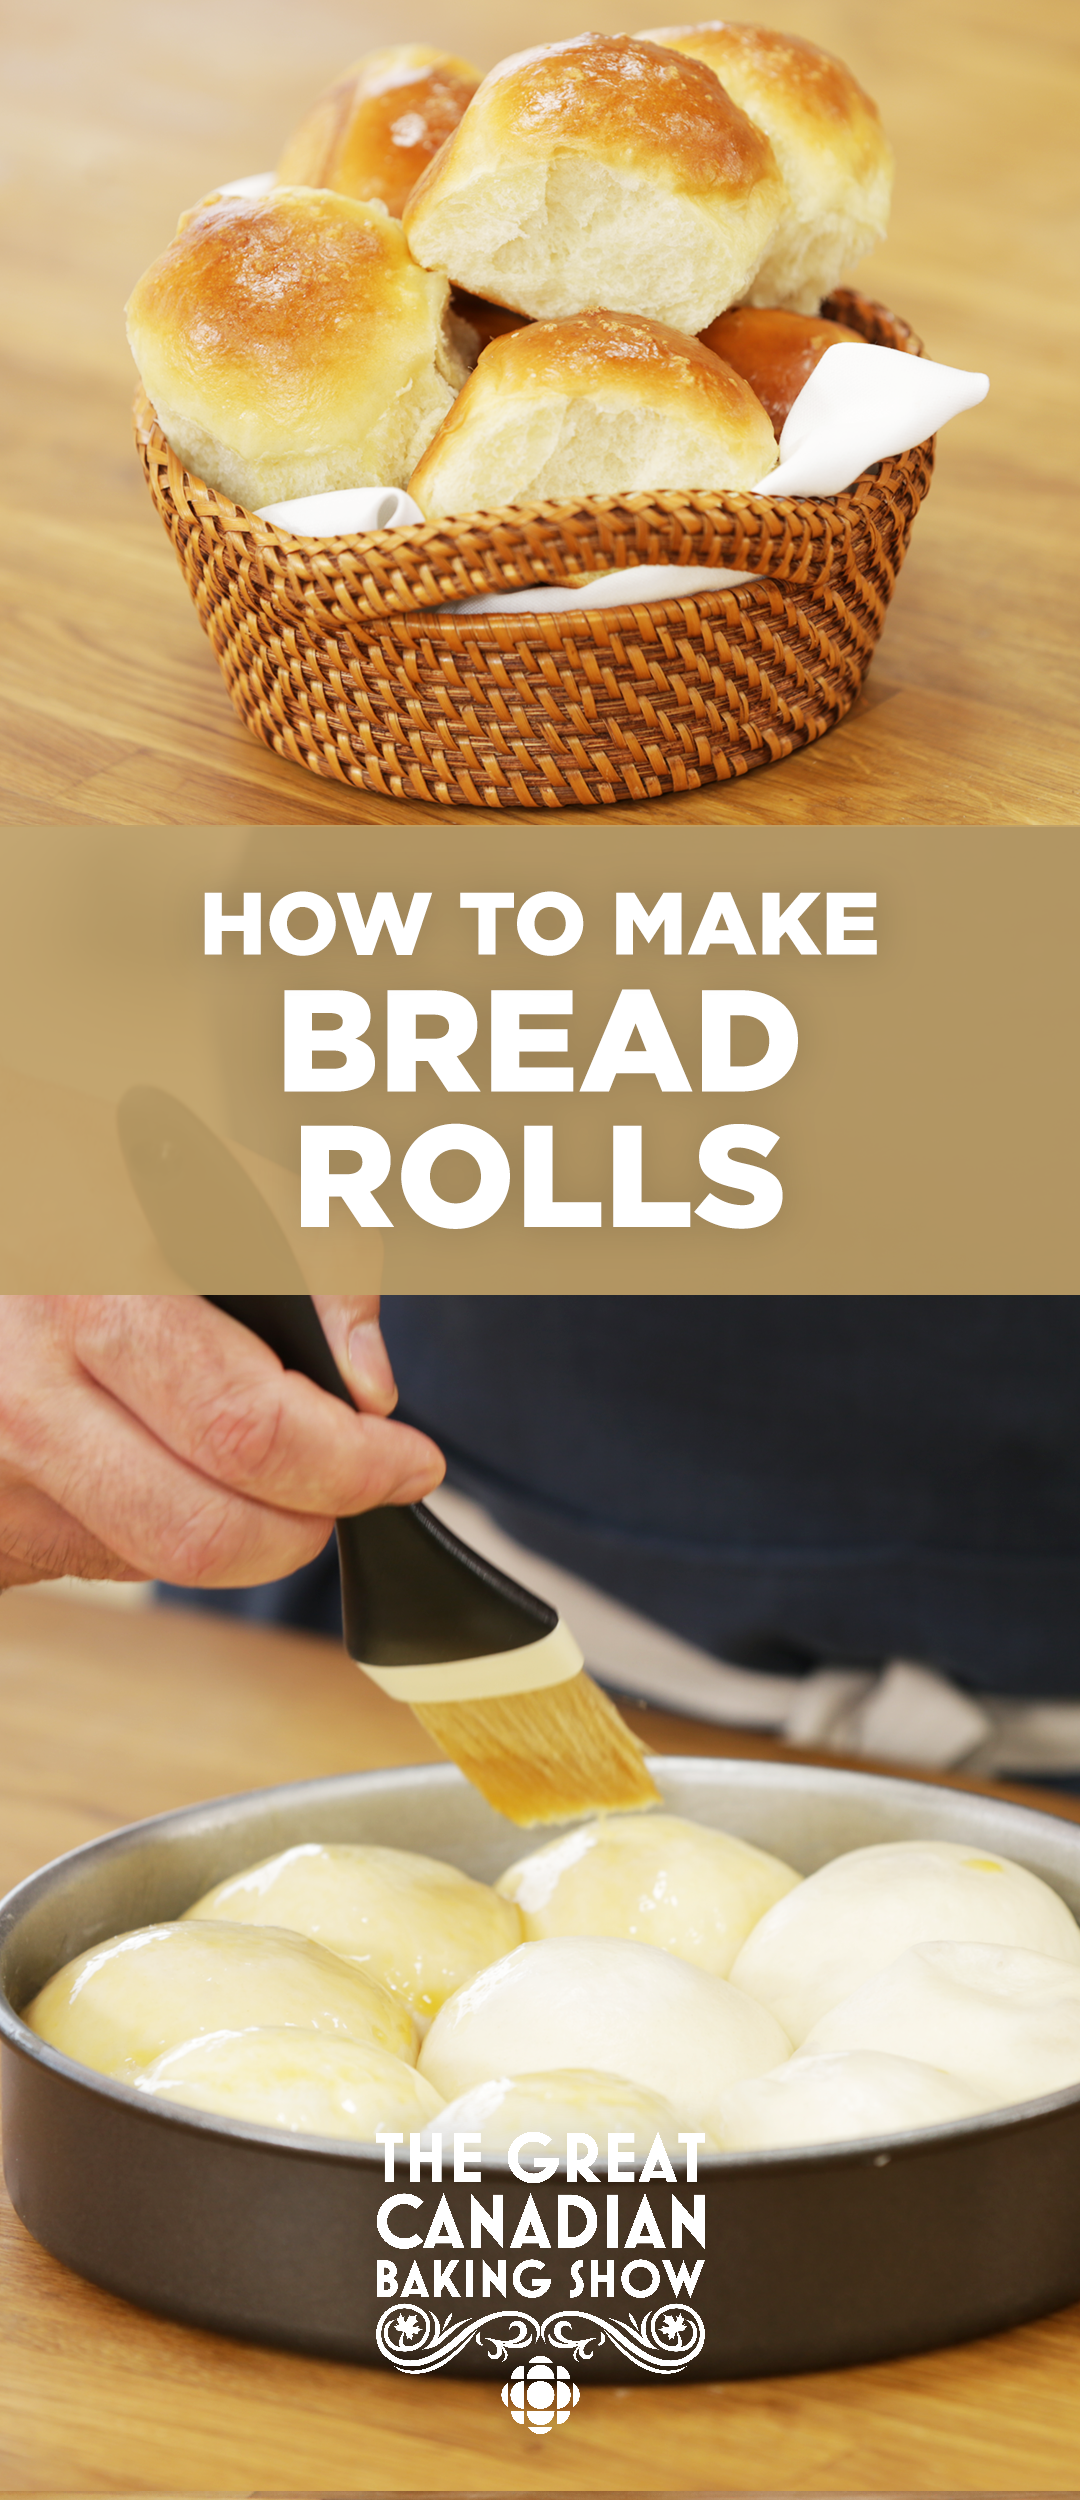 How to make bread rolls in 2020 British baking show